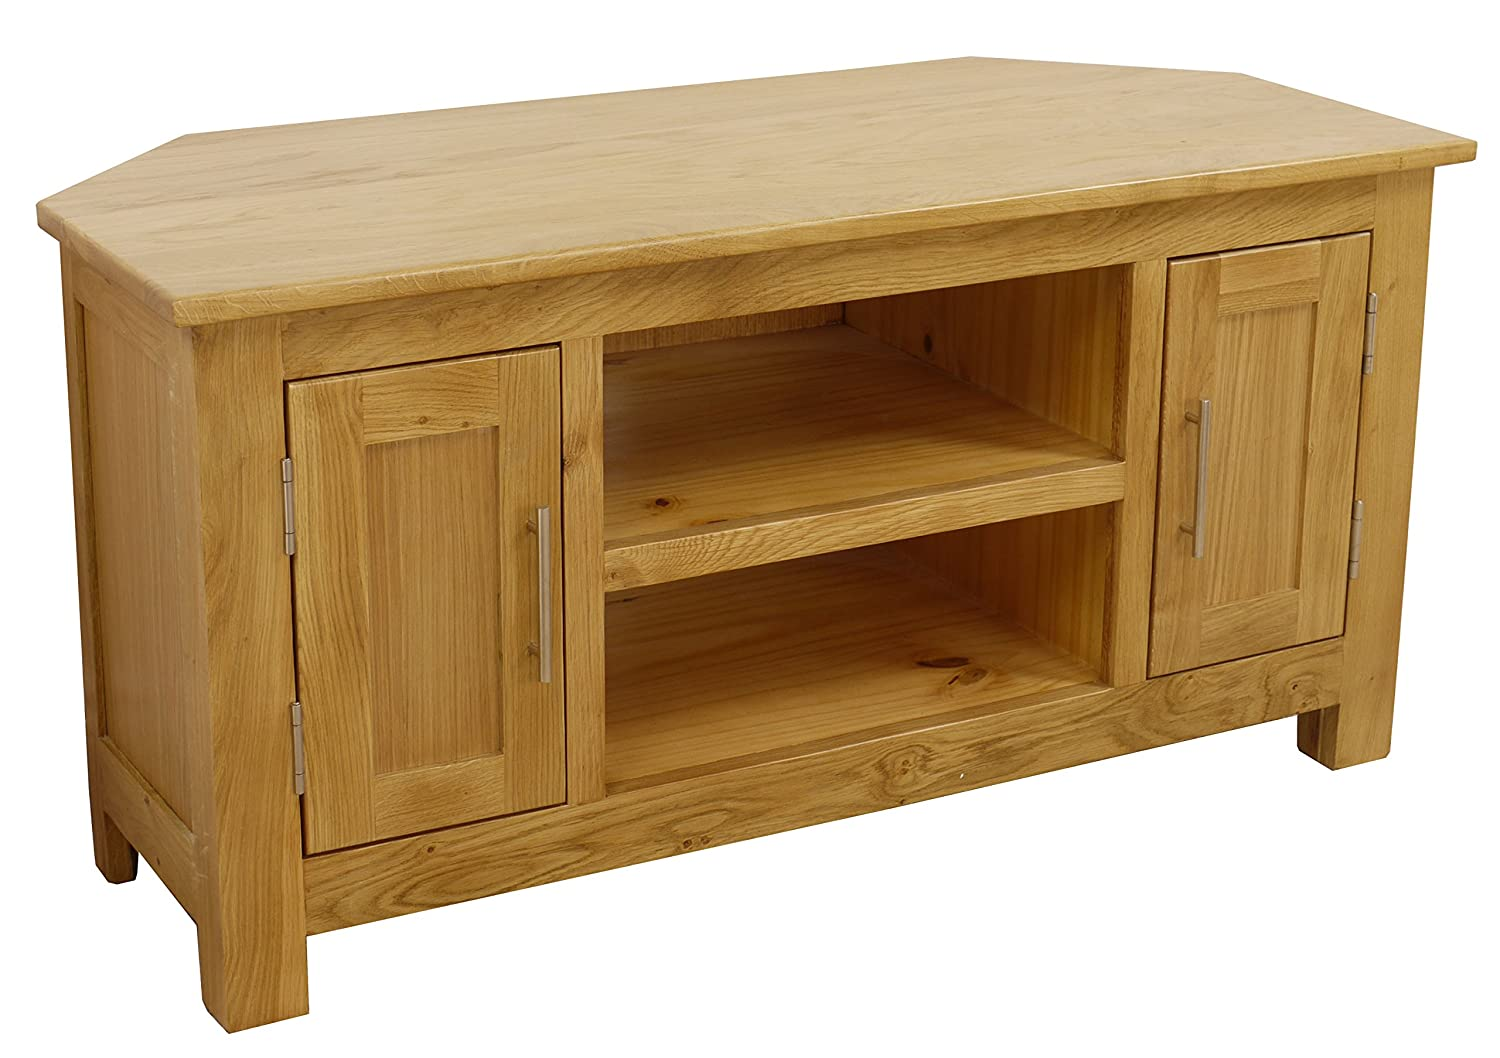 dad2f1fdad Oakland - Chunky Oak Corner Entertainment TV Stand - DVD Video Unit - Solid  Living Room Cabinet - W 106cm: Amazon.co.uk: Kitchen & Home